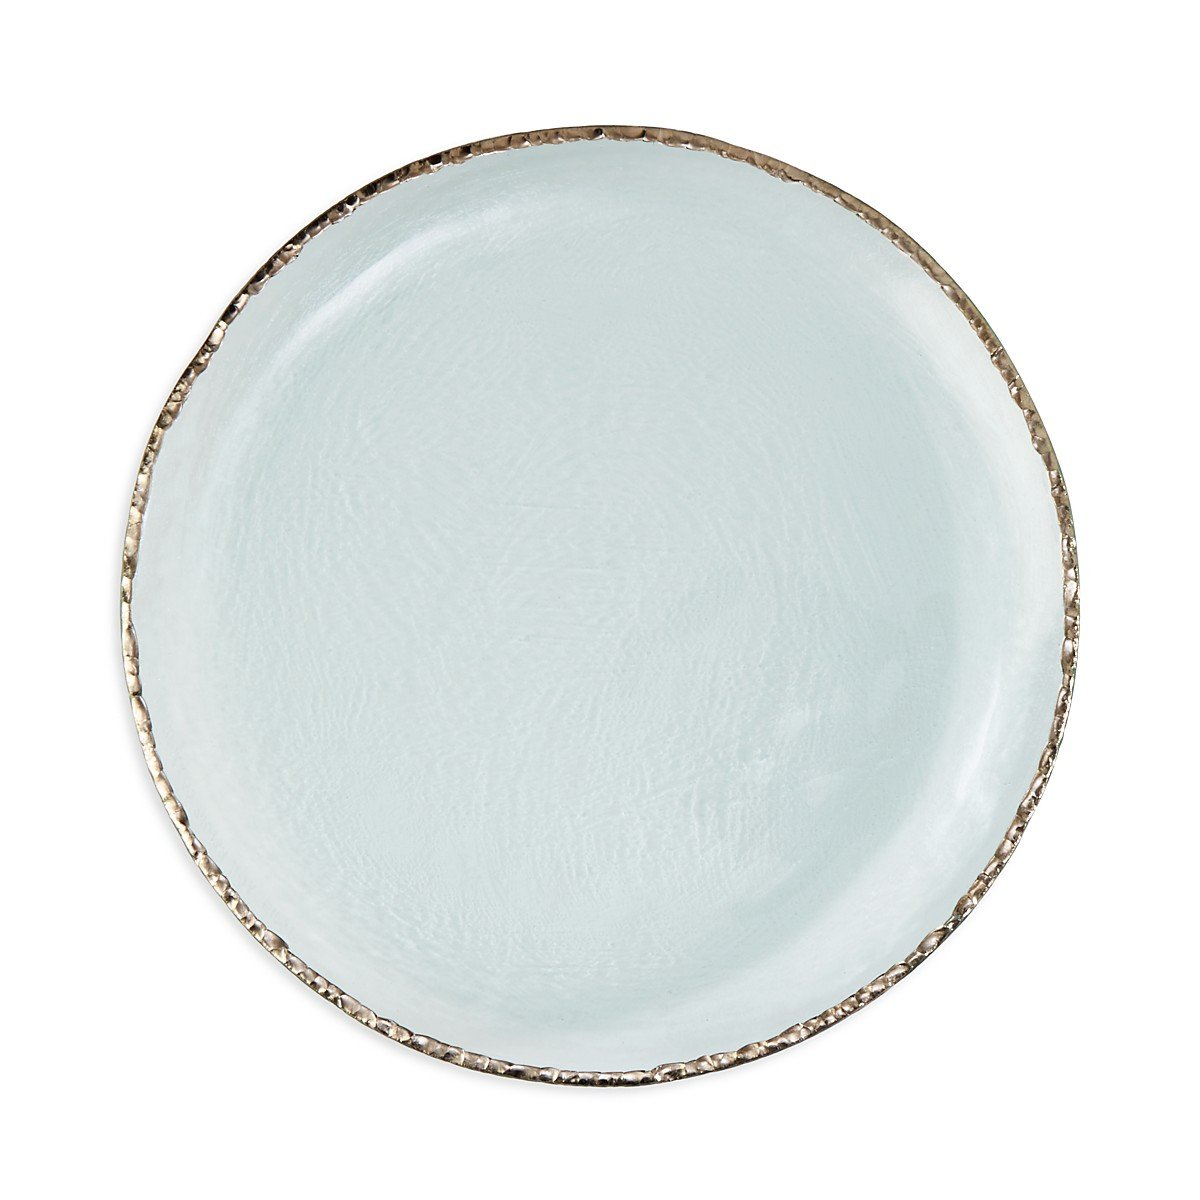 Annie Glass Edgey Platinum Charger plate 12'' round platter #e108p